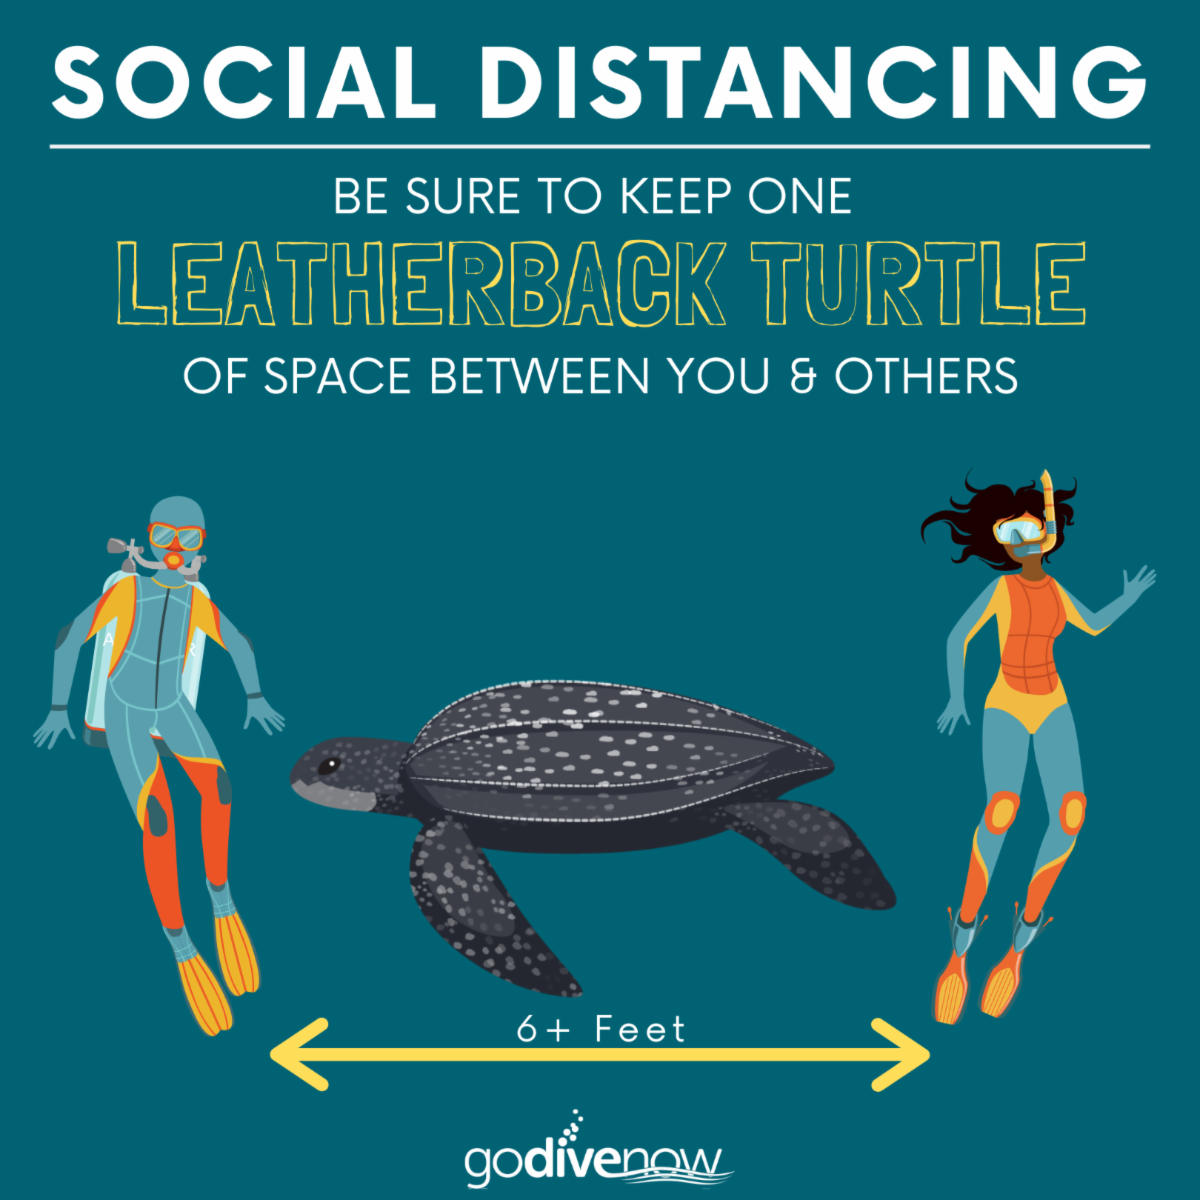 New social distancing shareable image